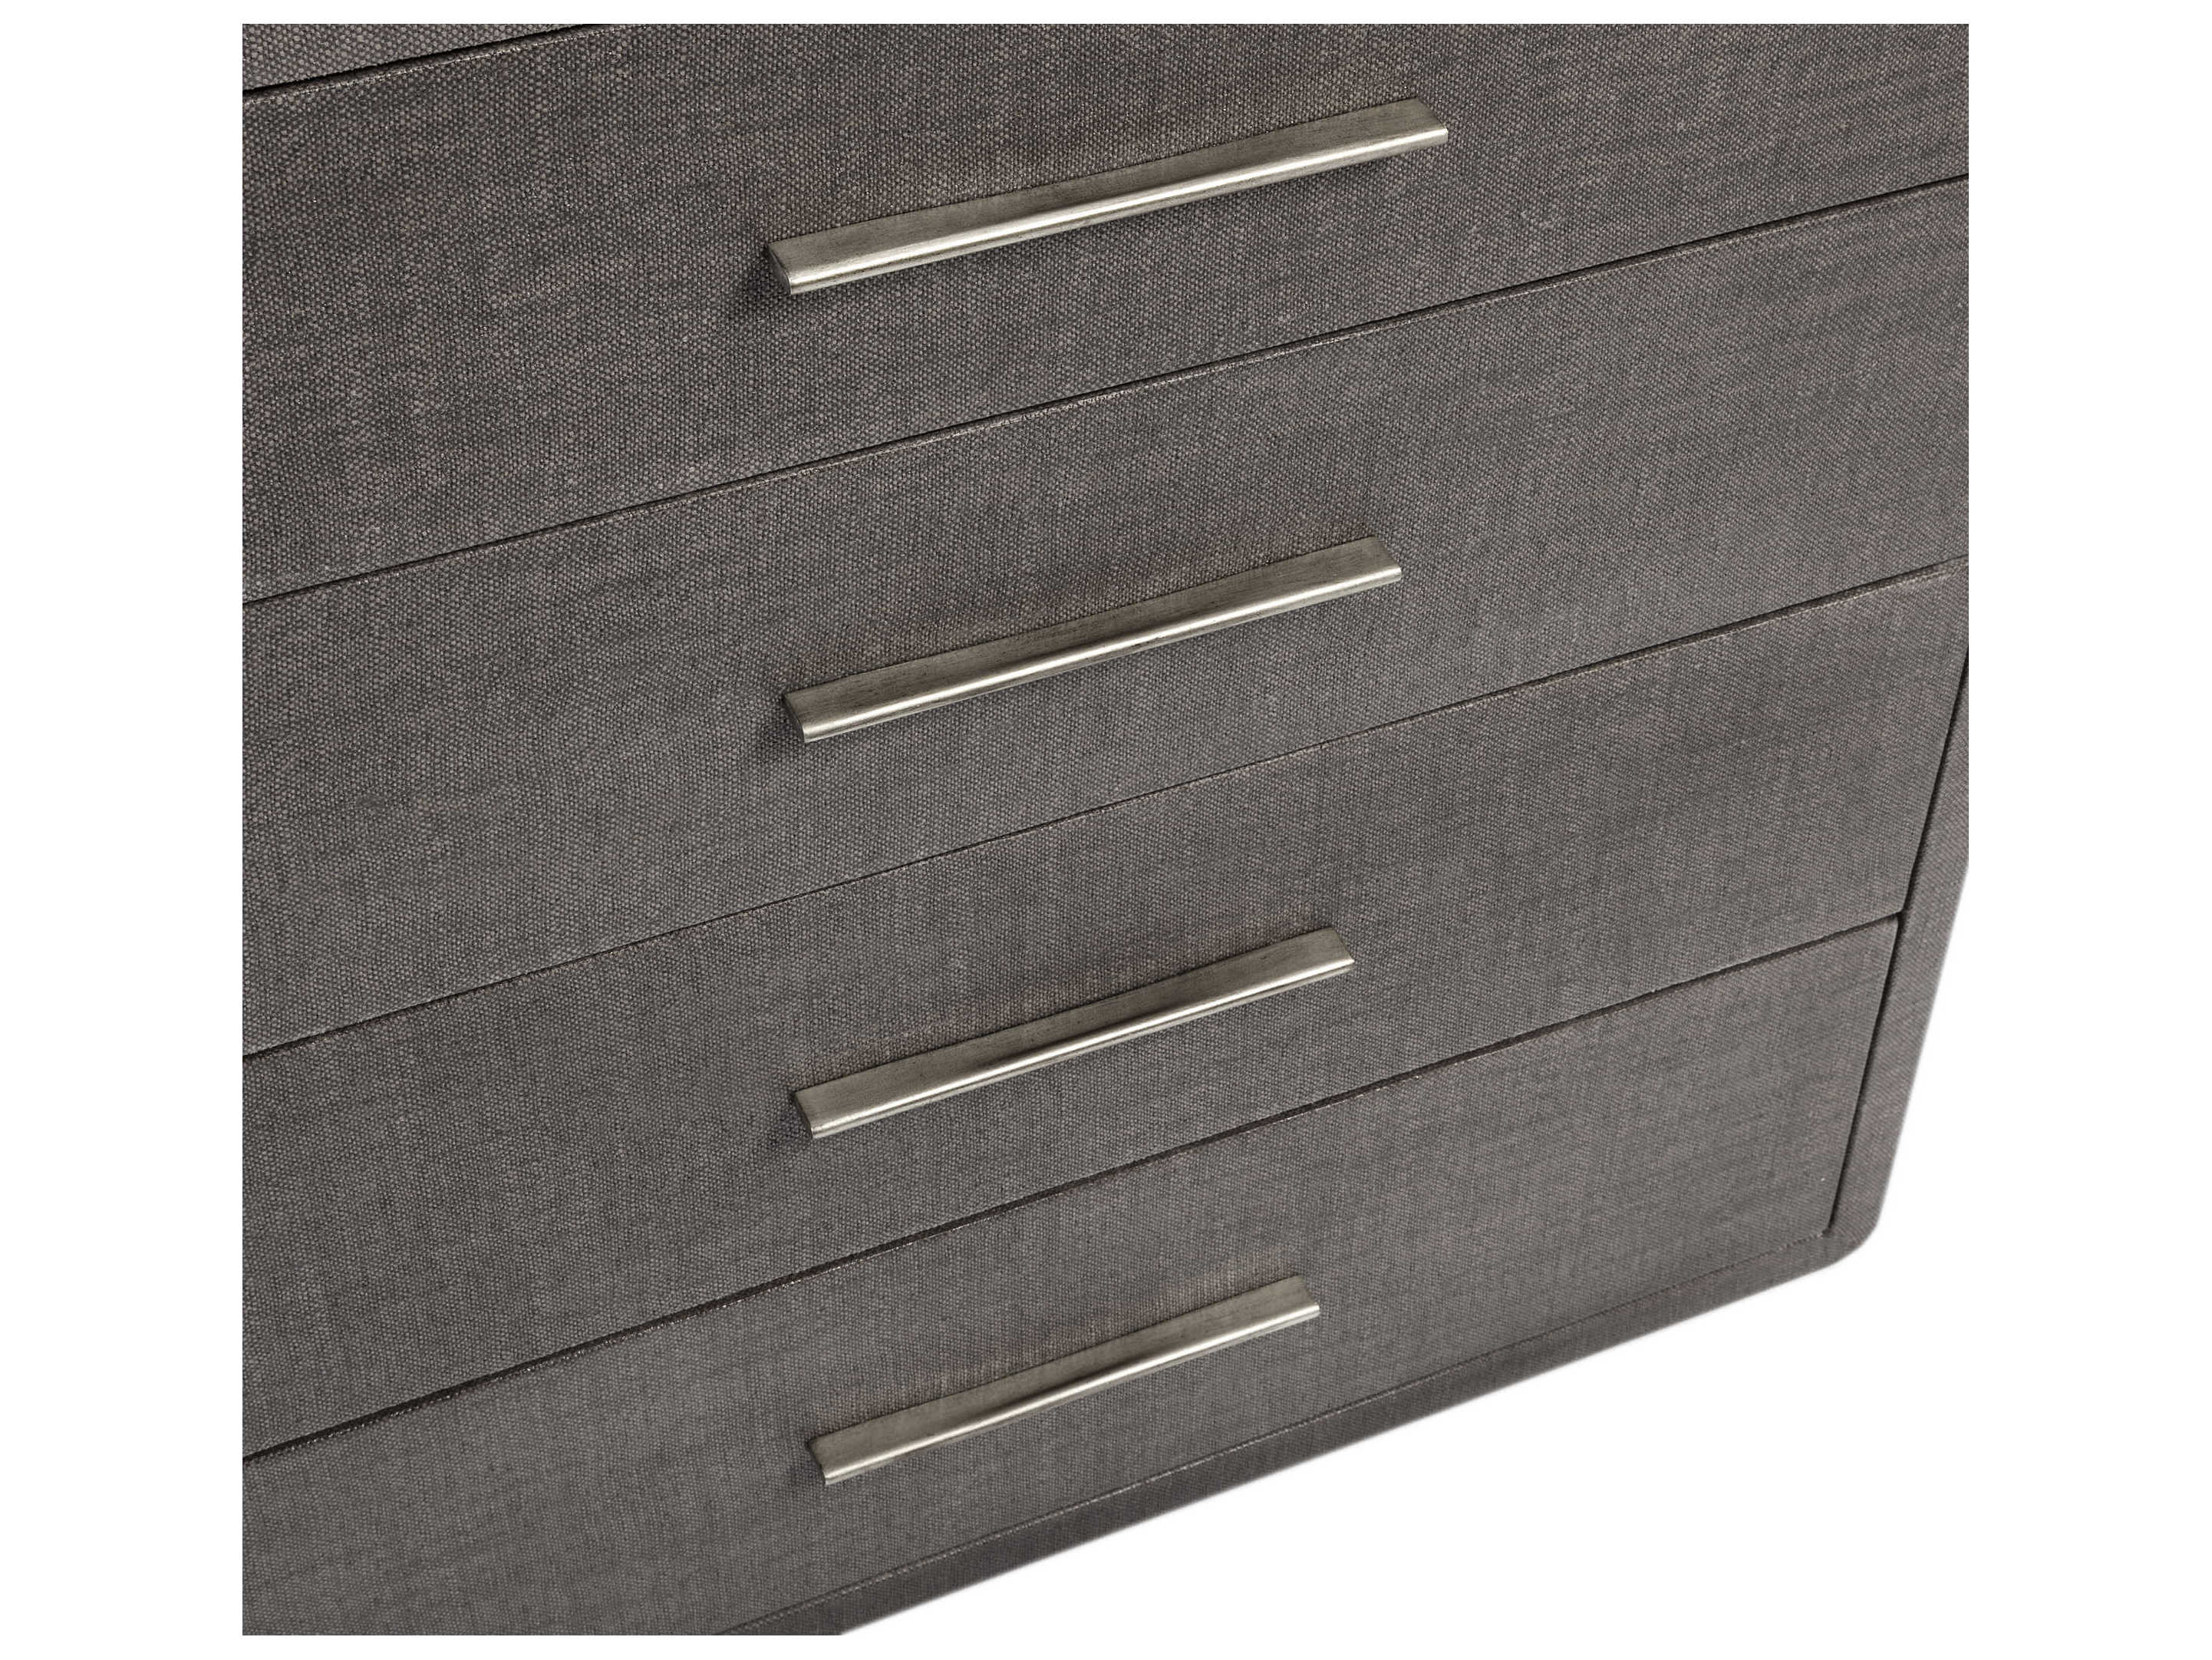 aluminum hamilton black chest accents and living home furniture number tone two products item room dresser wrap